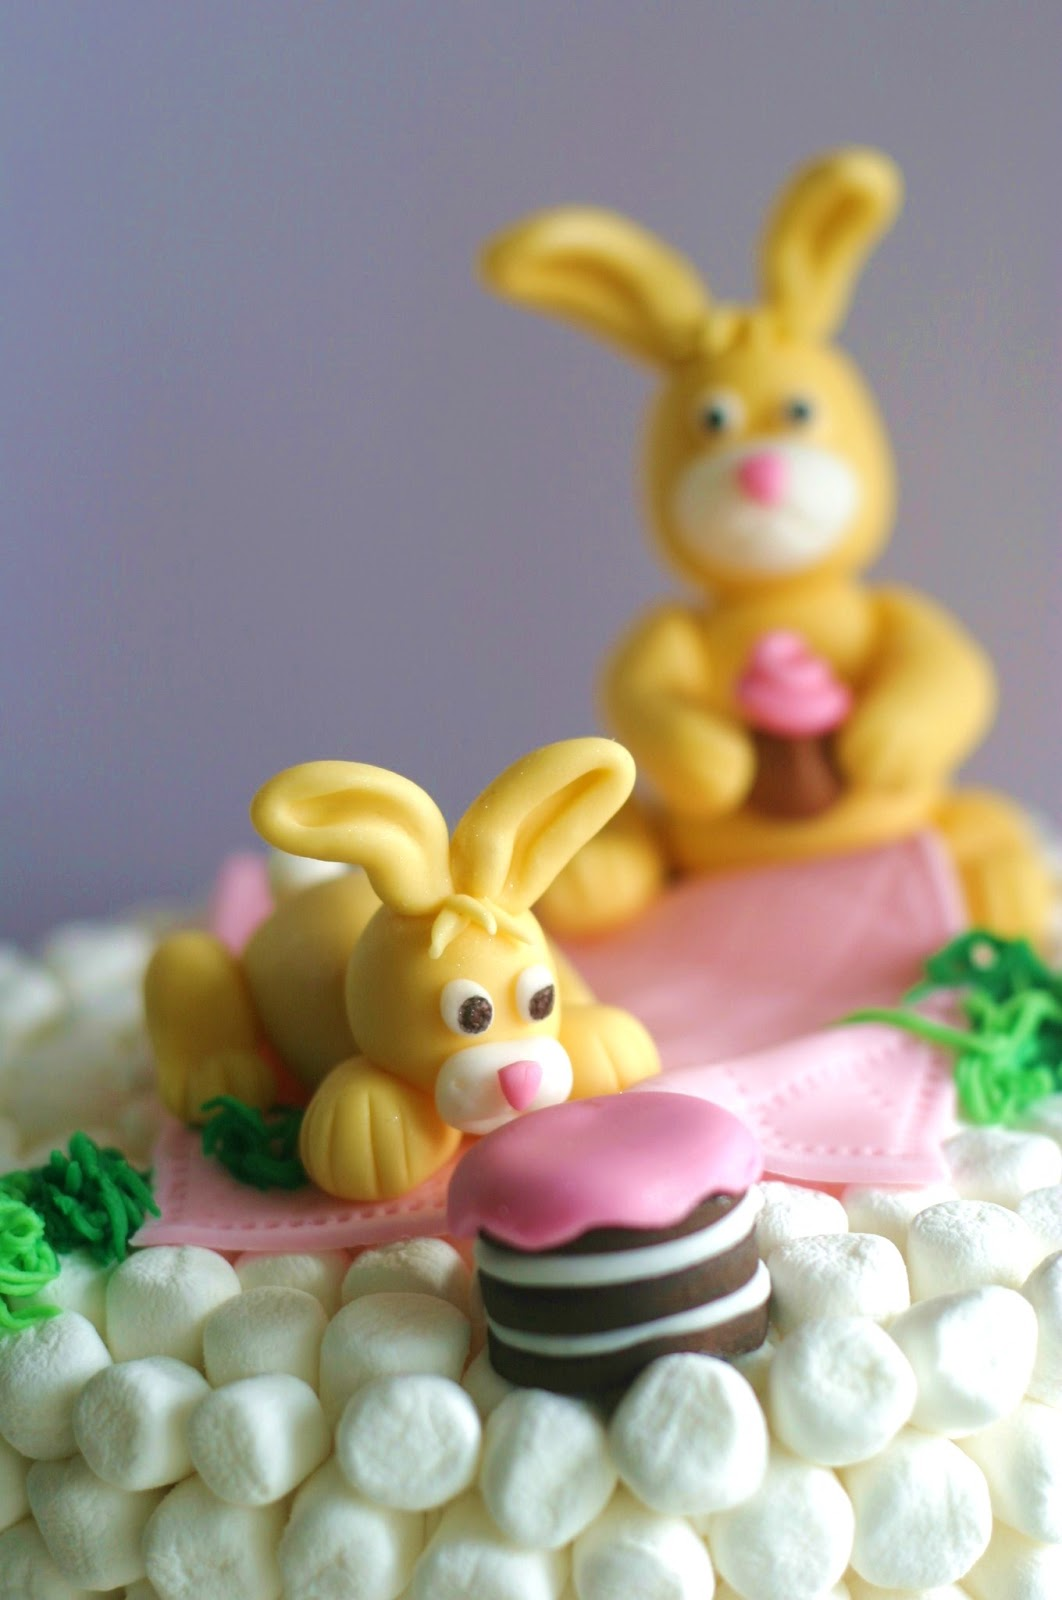 Marshmallow Bunny Cake wonderfuldiy1 Wonderful DIY Easter Marshmallow Bunny Cake